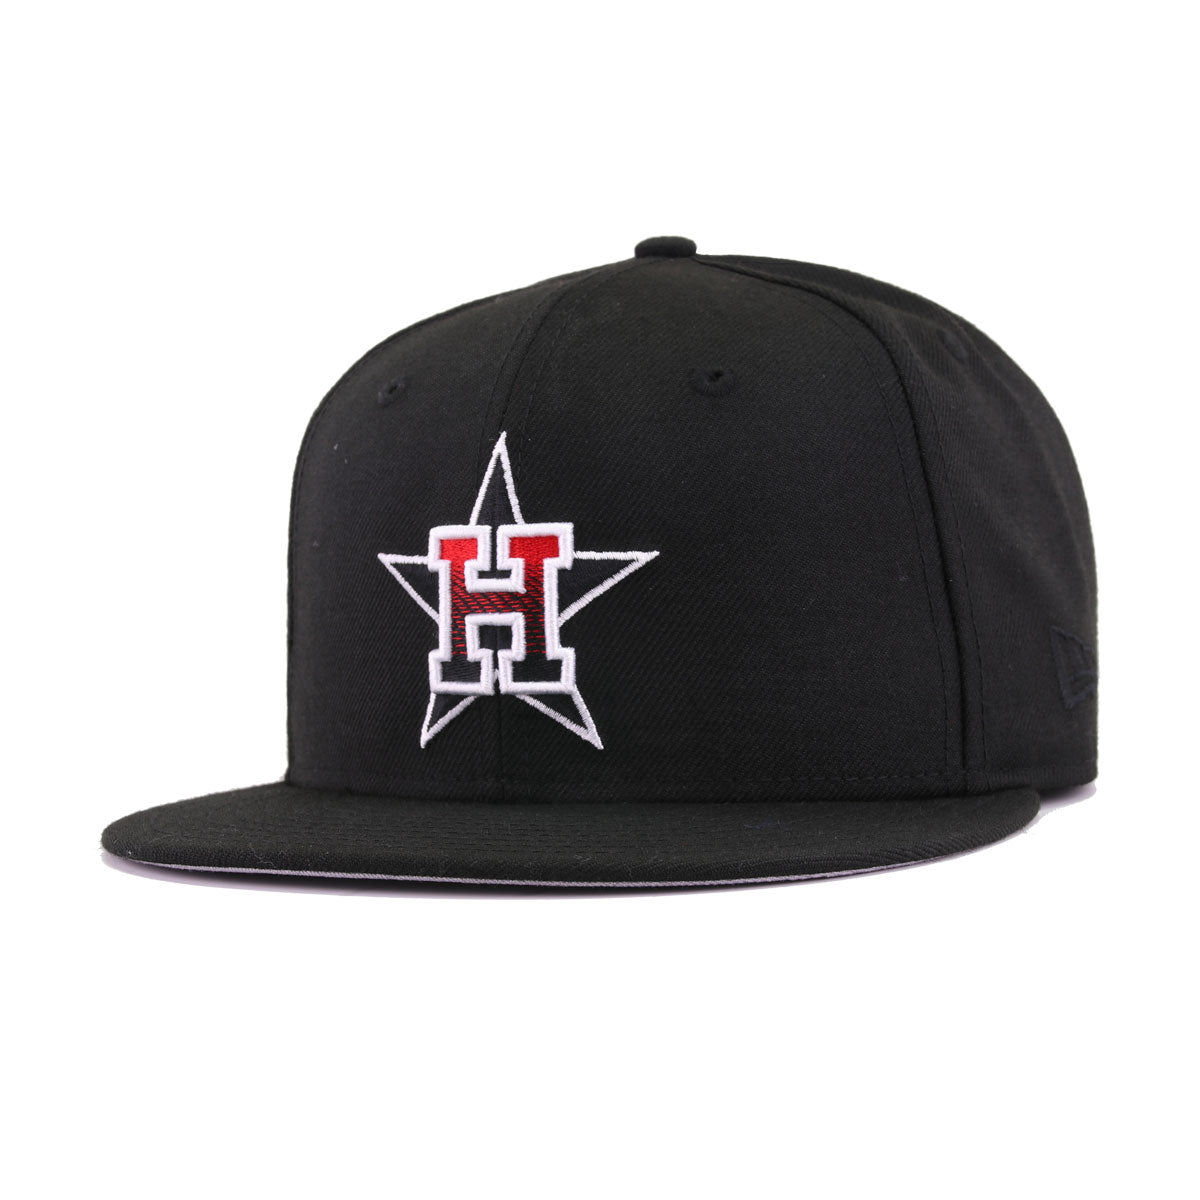 Houston Astros Black Scarlet Gradient 45th Anniversary New Era 9Fifty Snapback